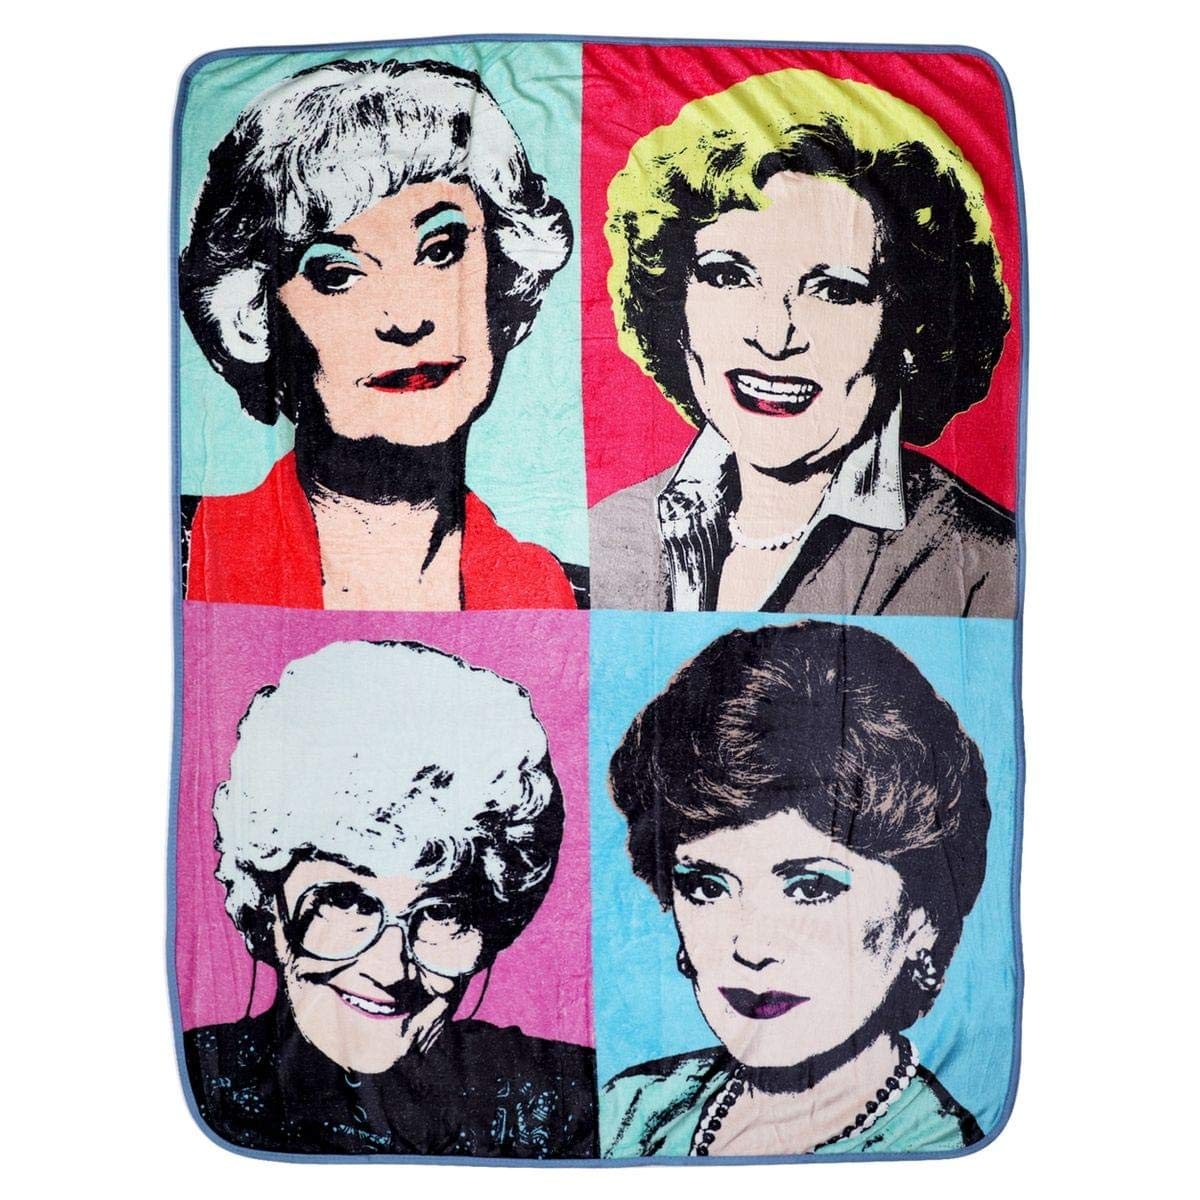 Golden Girls Themed Warhol Fleece Blanket Comforter | 45 x 60 Inches Stadium Blanket